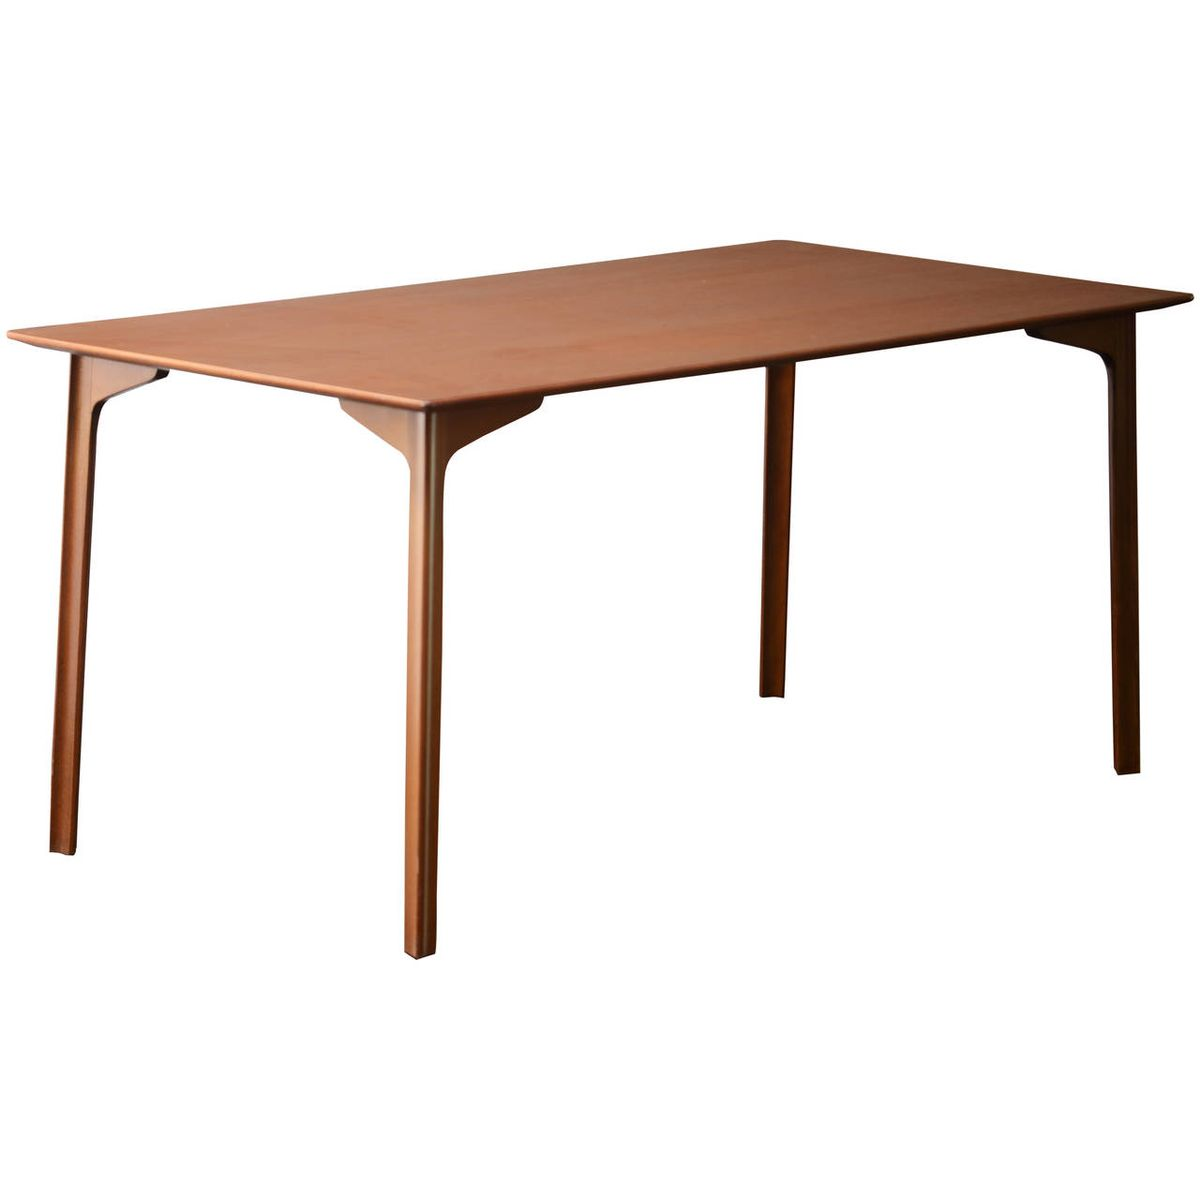 Teak grand prix table by arne jacobsen 1957 for sale at for Grande table